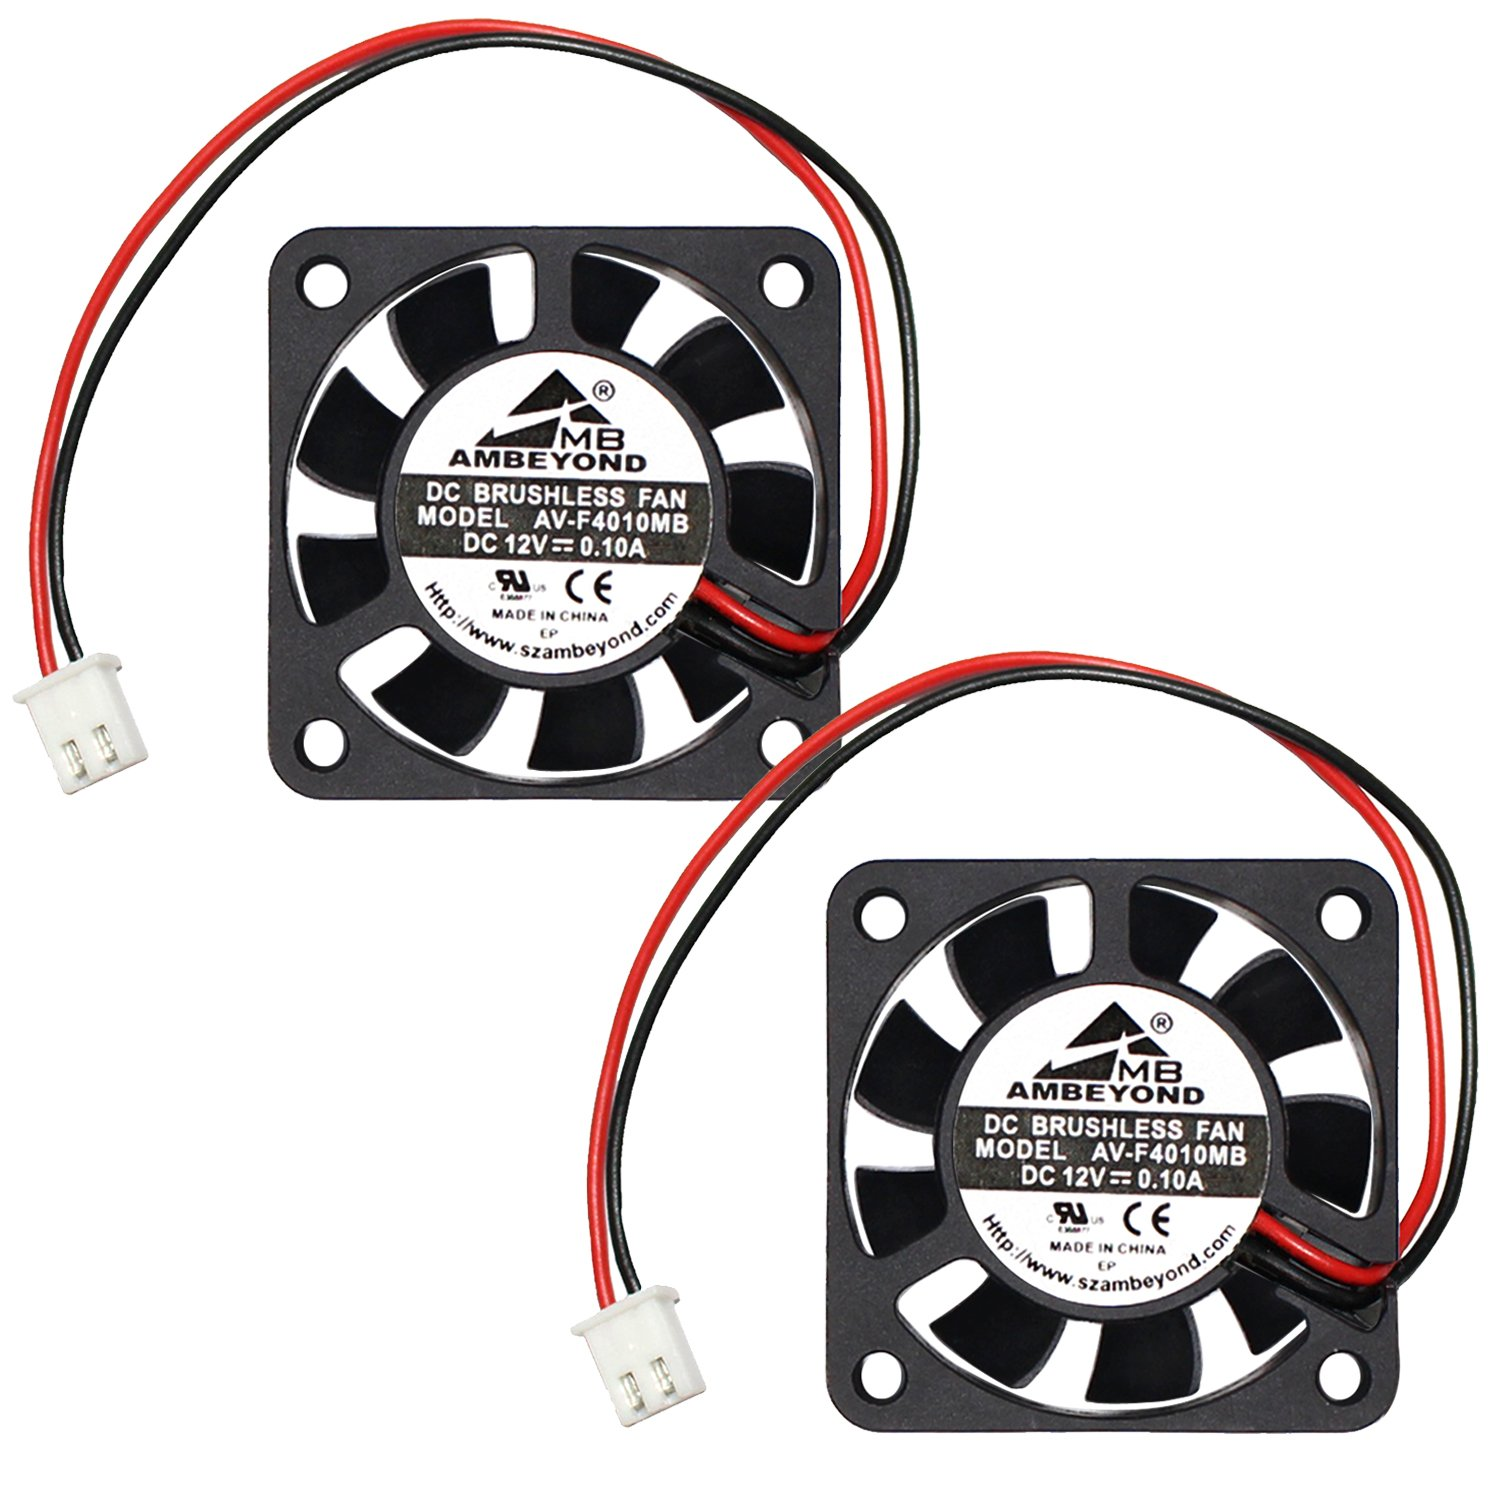 2-packs 40 x 40 x 10mm 4010 12V 0.10A Brushless DC Cooling Fan 2pin AV-F4010MB UL CE by AMBEYOND FAN (Image #1)